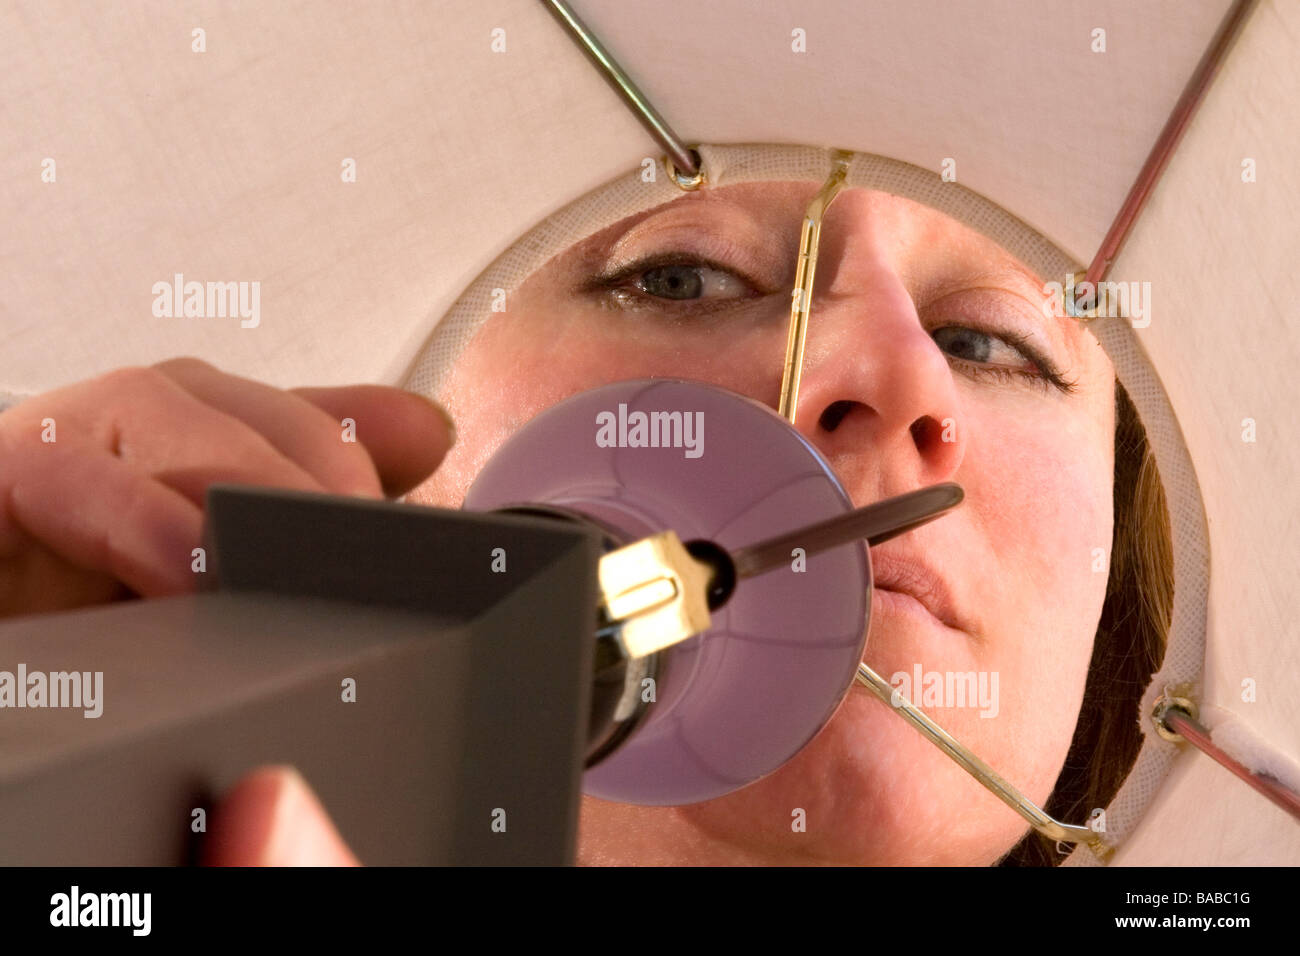 A close up of a woman reaching into a lamp to turn it on. - Stock Image